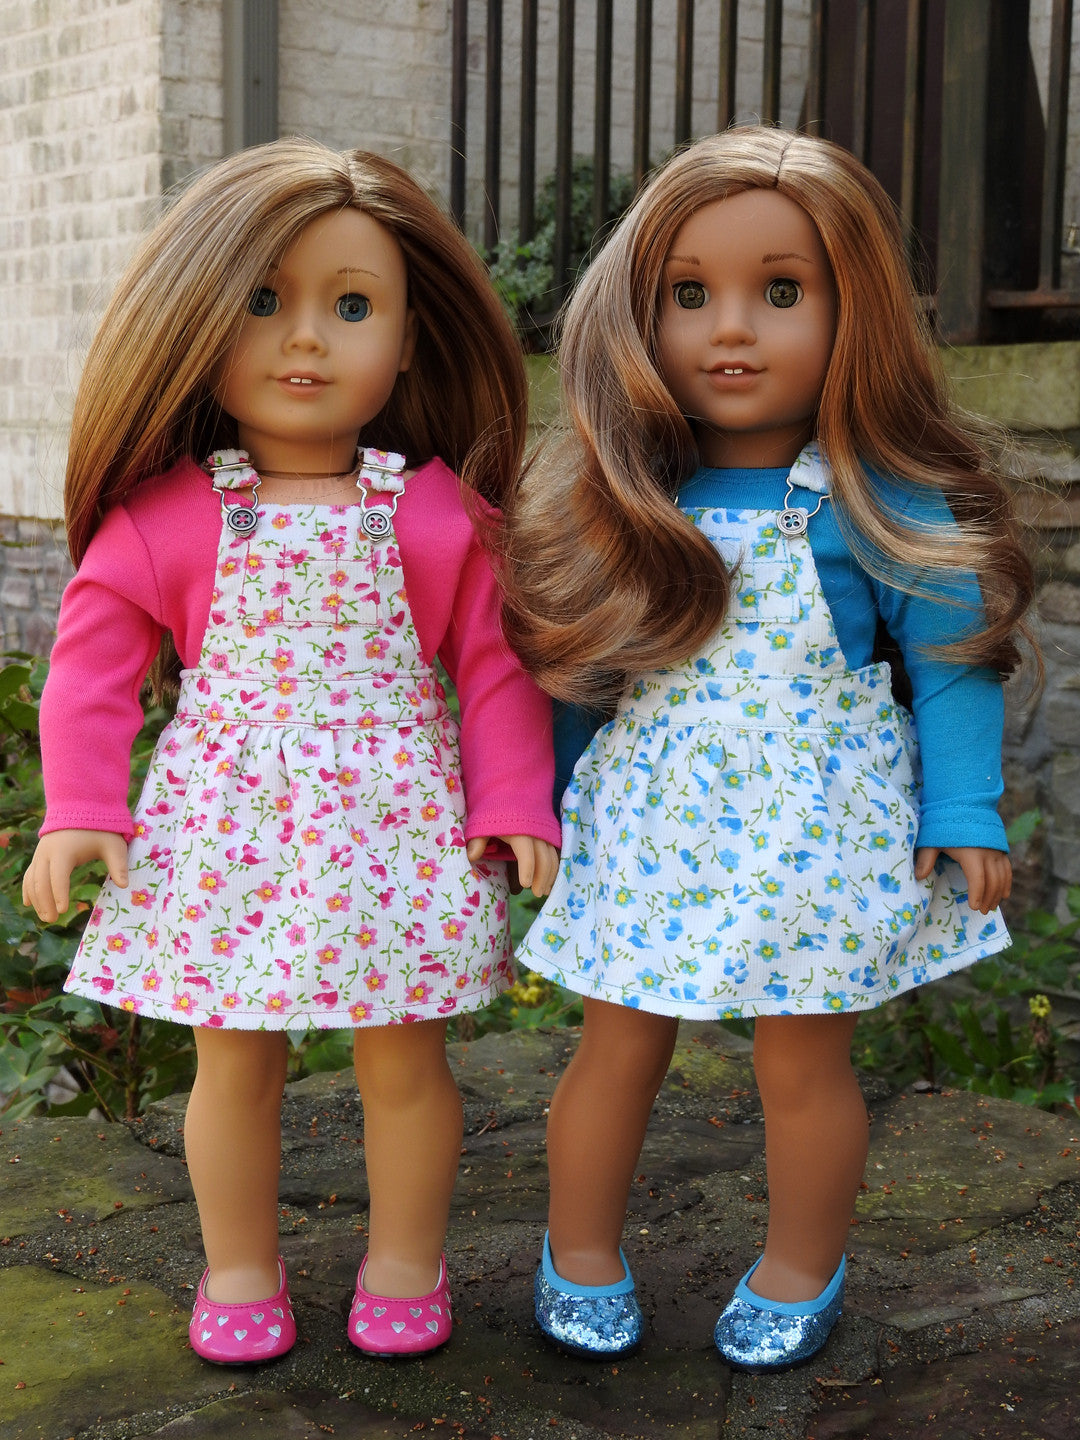 18 Inch Doll Clothes, AG Doll Dress - Trendy Overall Dress and T-Shirt for American Girl Doll